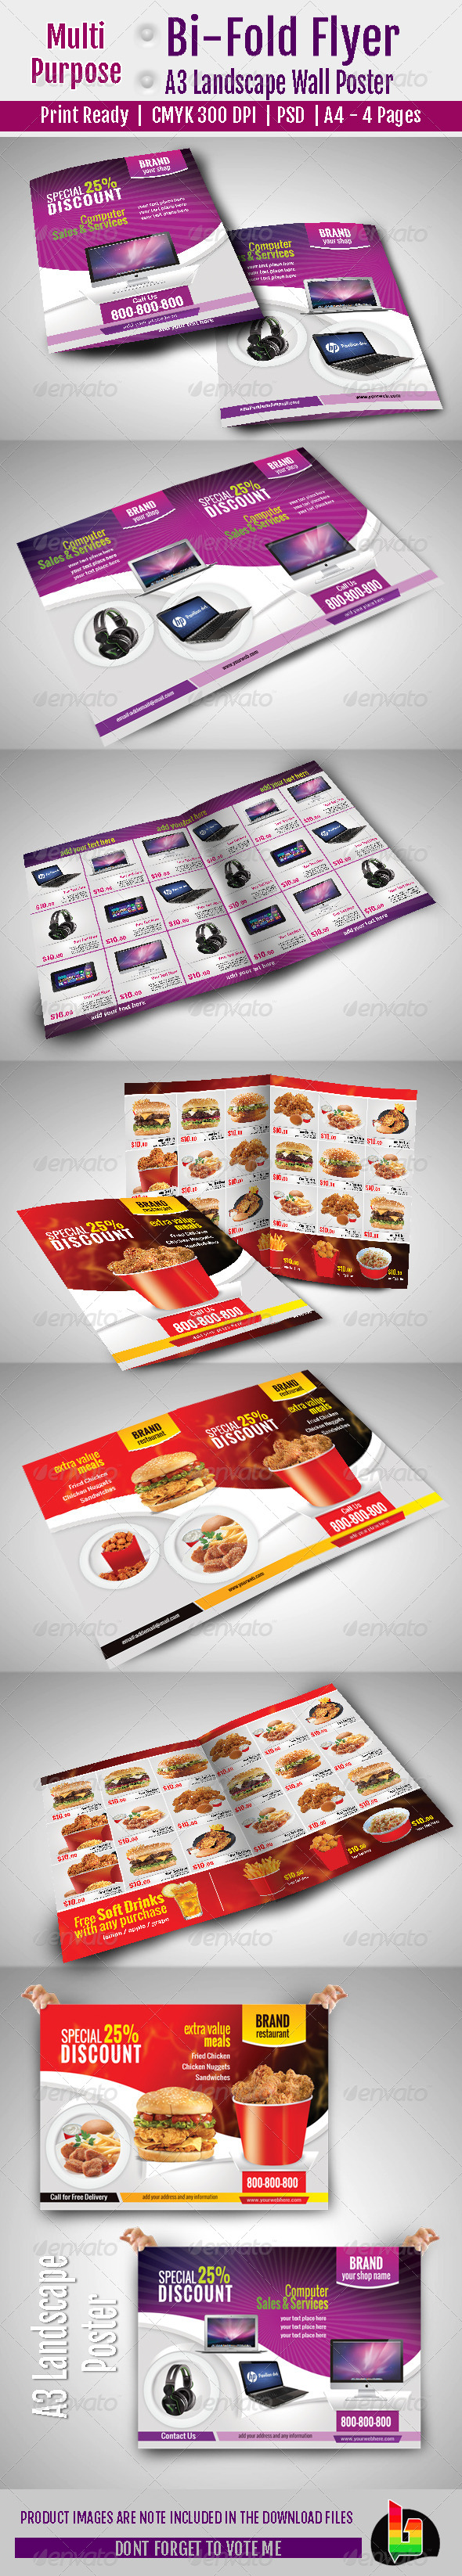 GraphicRiver Multi Purpose Bi-Fold Flyer & A3 Poster 6785689